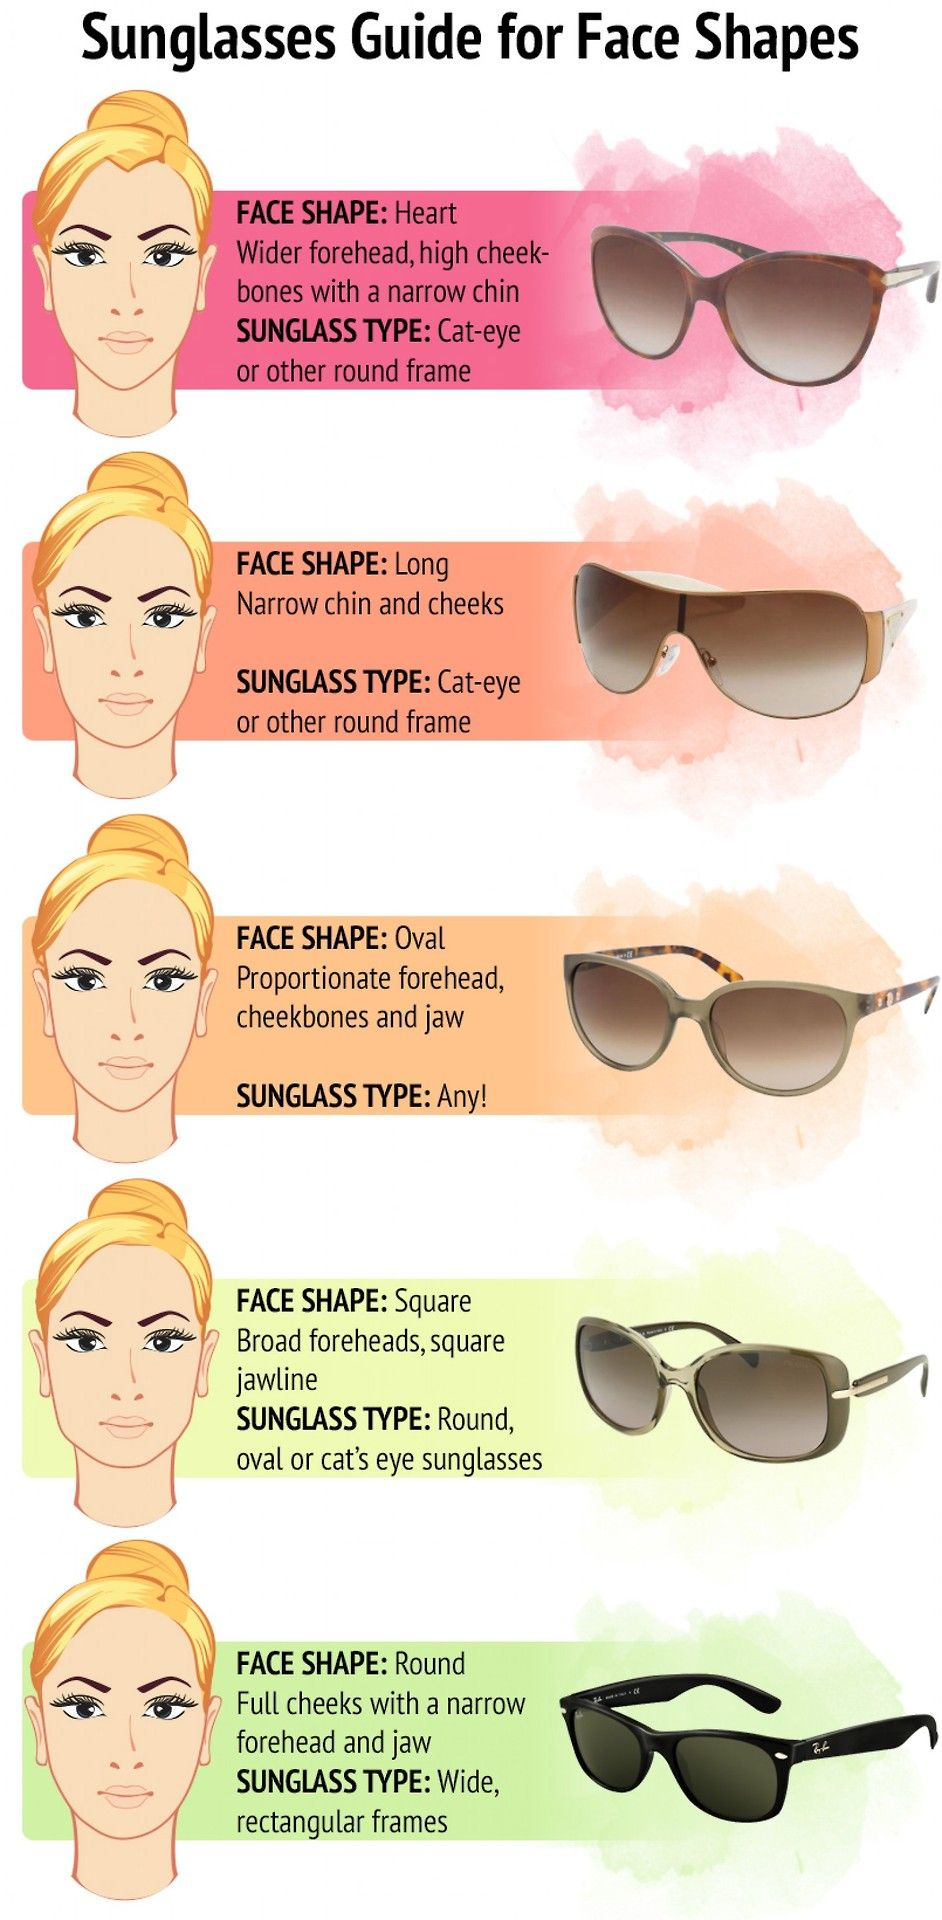 6a6123813a3 Sunglasses Guide for Face Shapes Heart Shaped Face Glasses